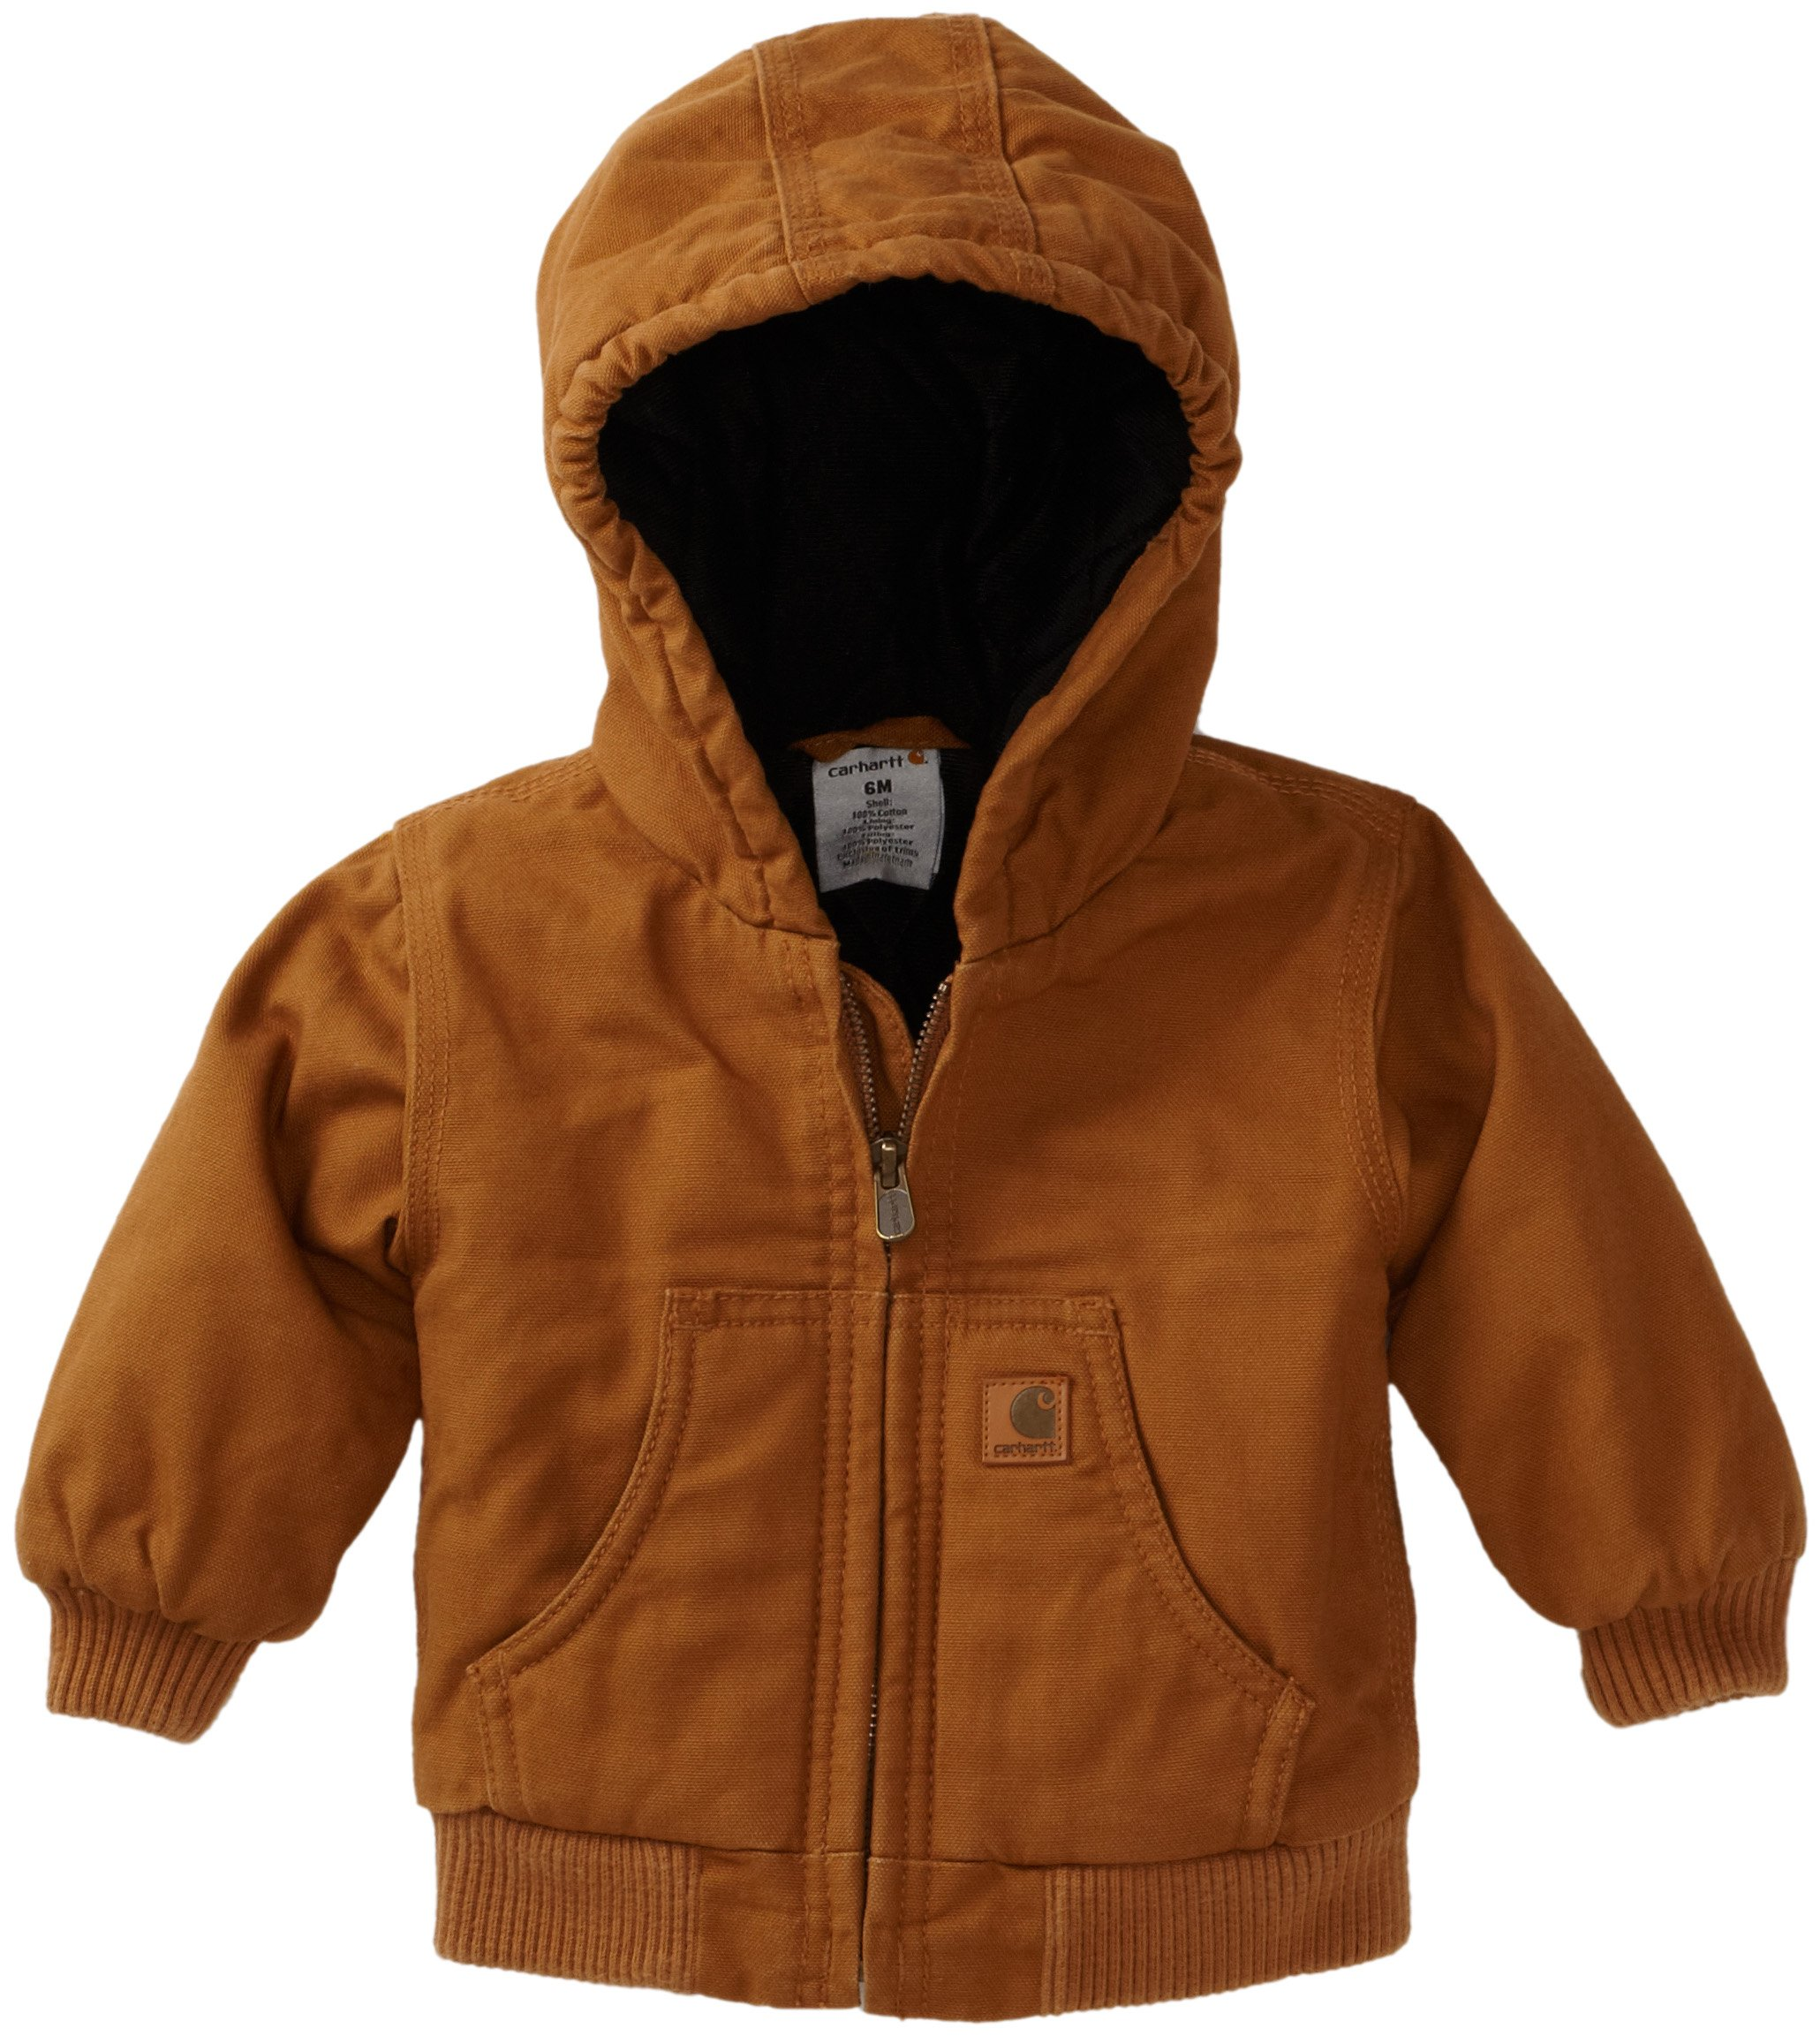 Carhartt Baby-boys Infant Active Quilted Flannel Lined Jacket, Carhartt Brown, 6 Months by Carhartt